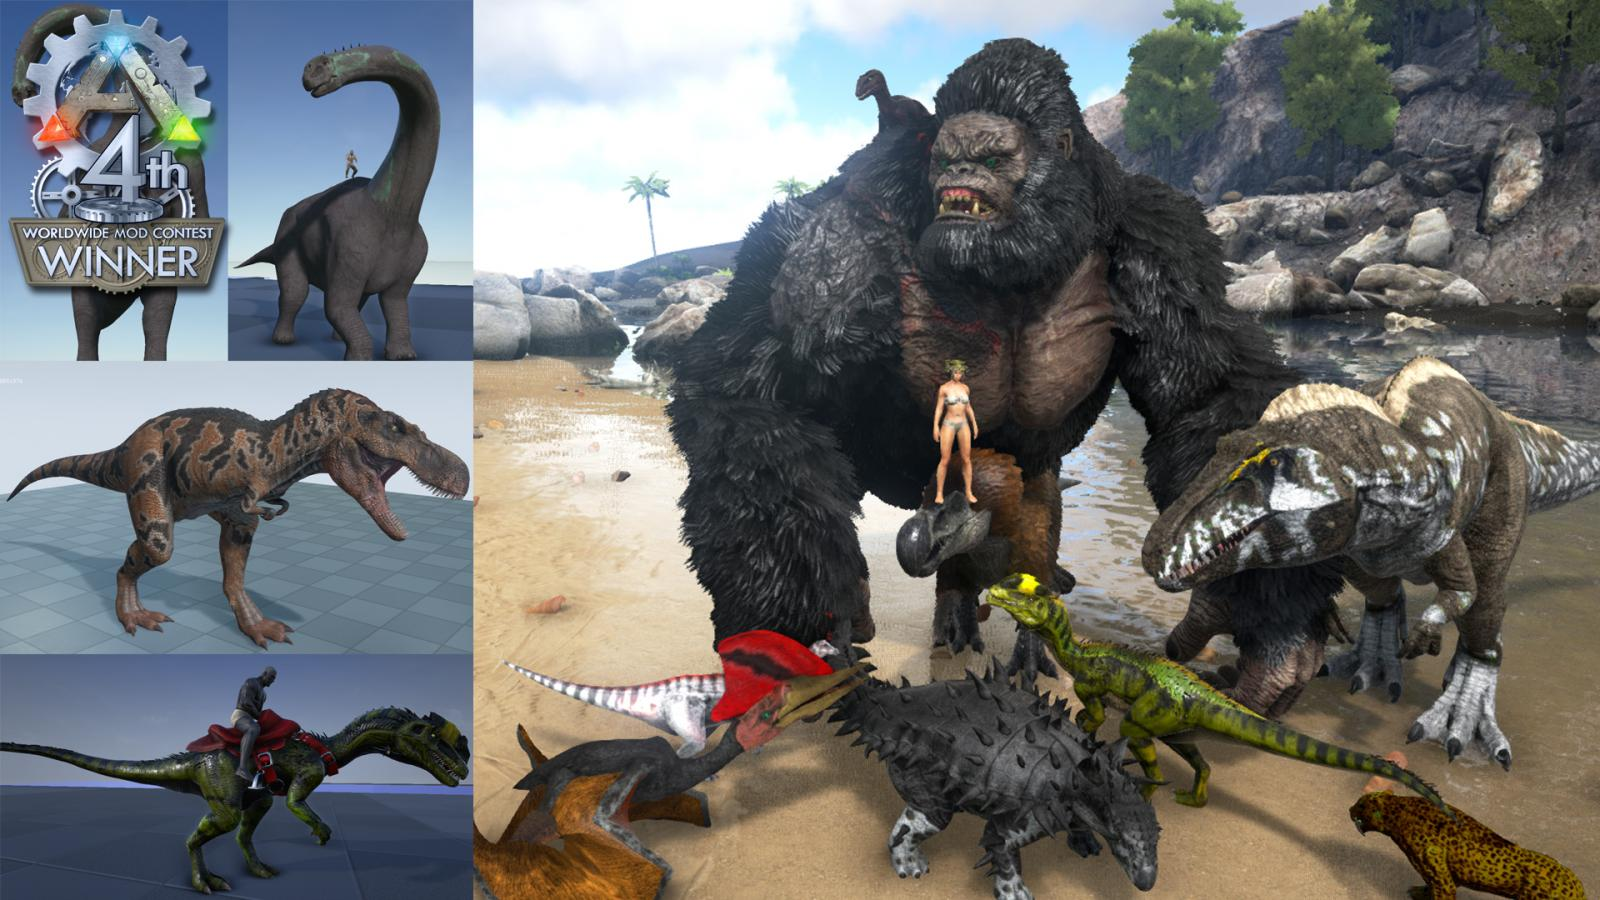 Complexmindeds content ark official community forums its always fun to see how modders use existing content and modify it to create new experiences cool 13 new creatures gives an exciting new way to look at malvernweather Image collections